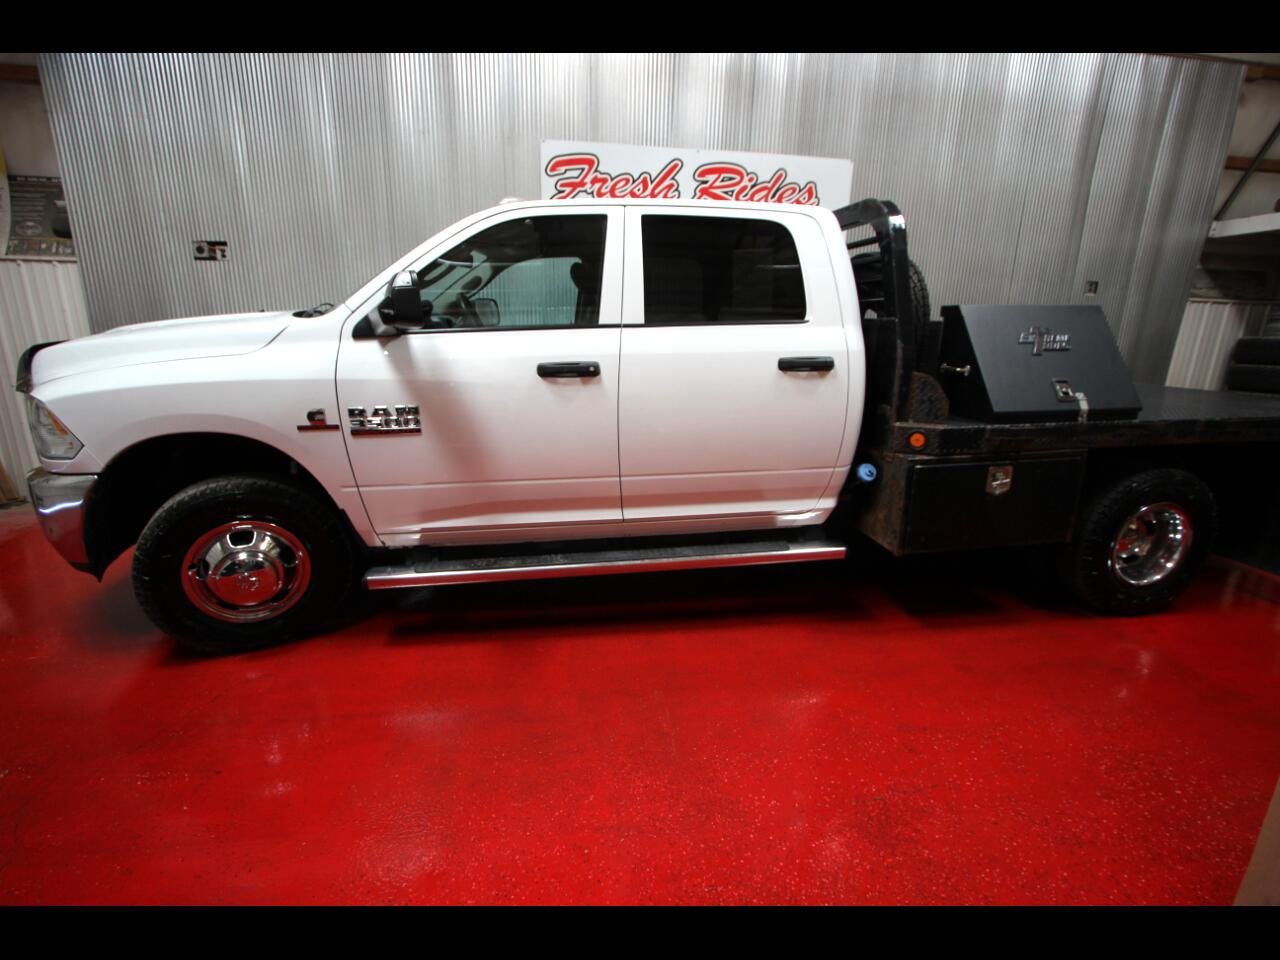 2014 RAM 3500 Chassis Cab